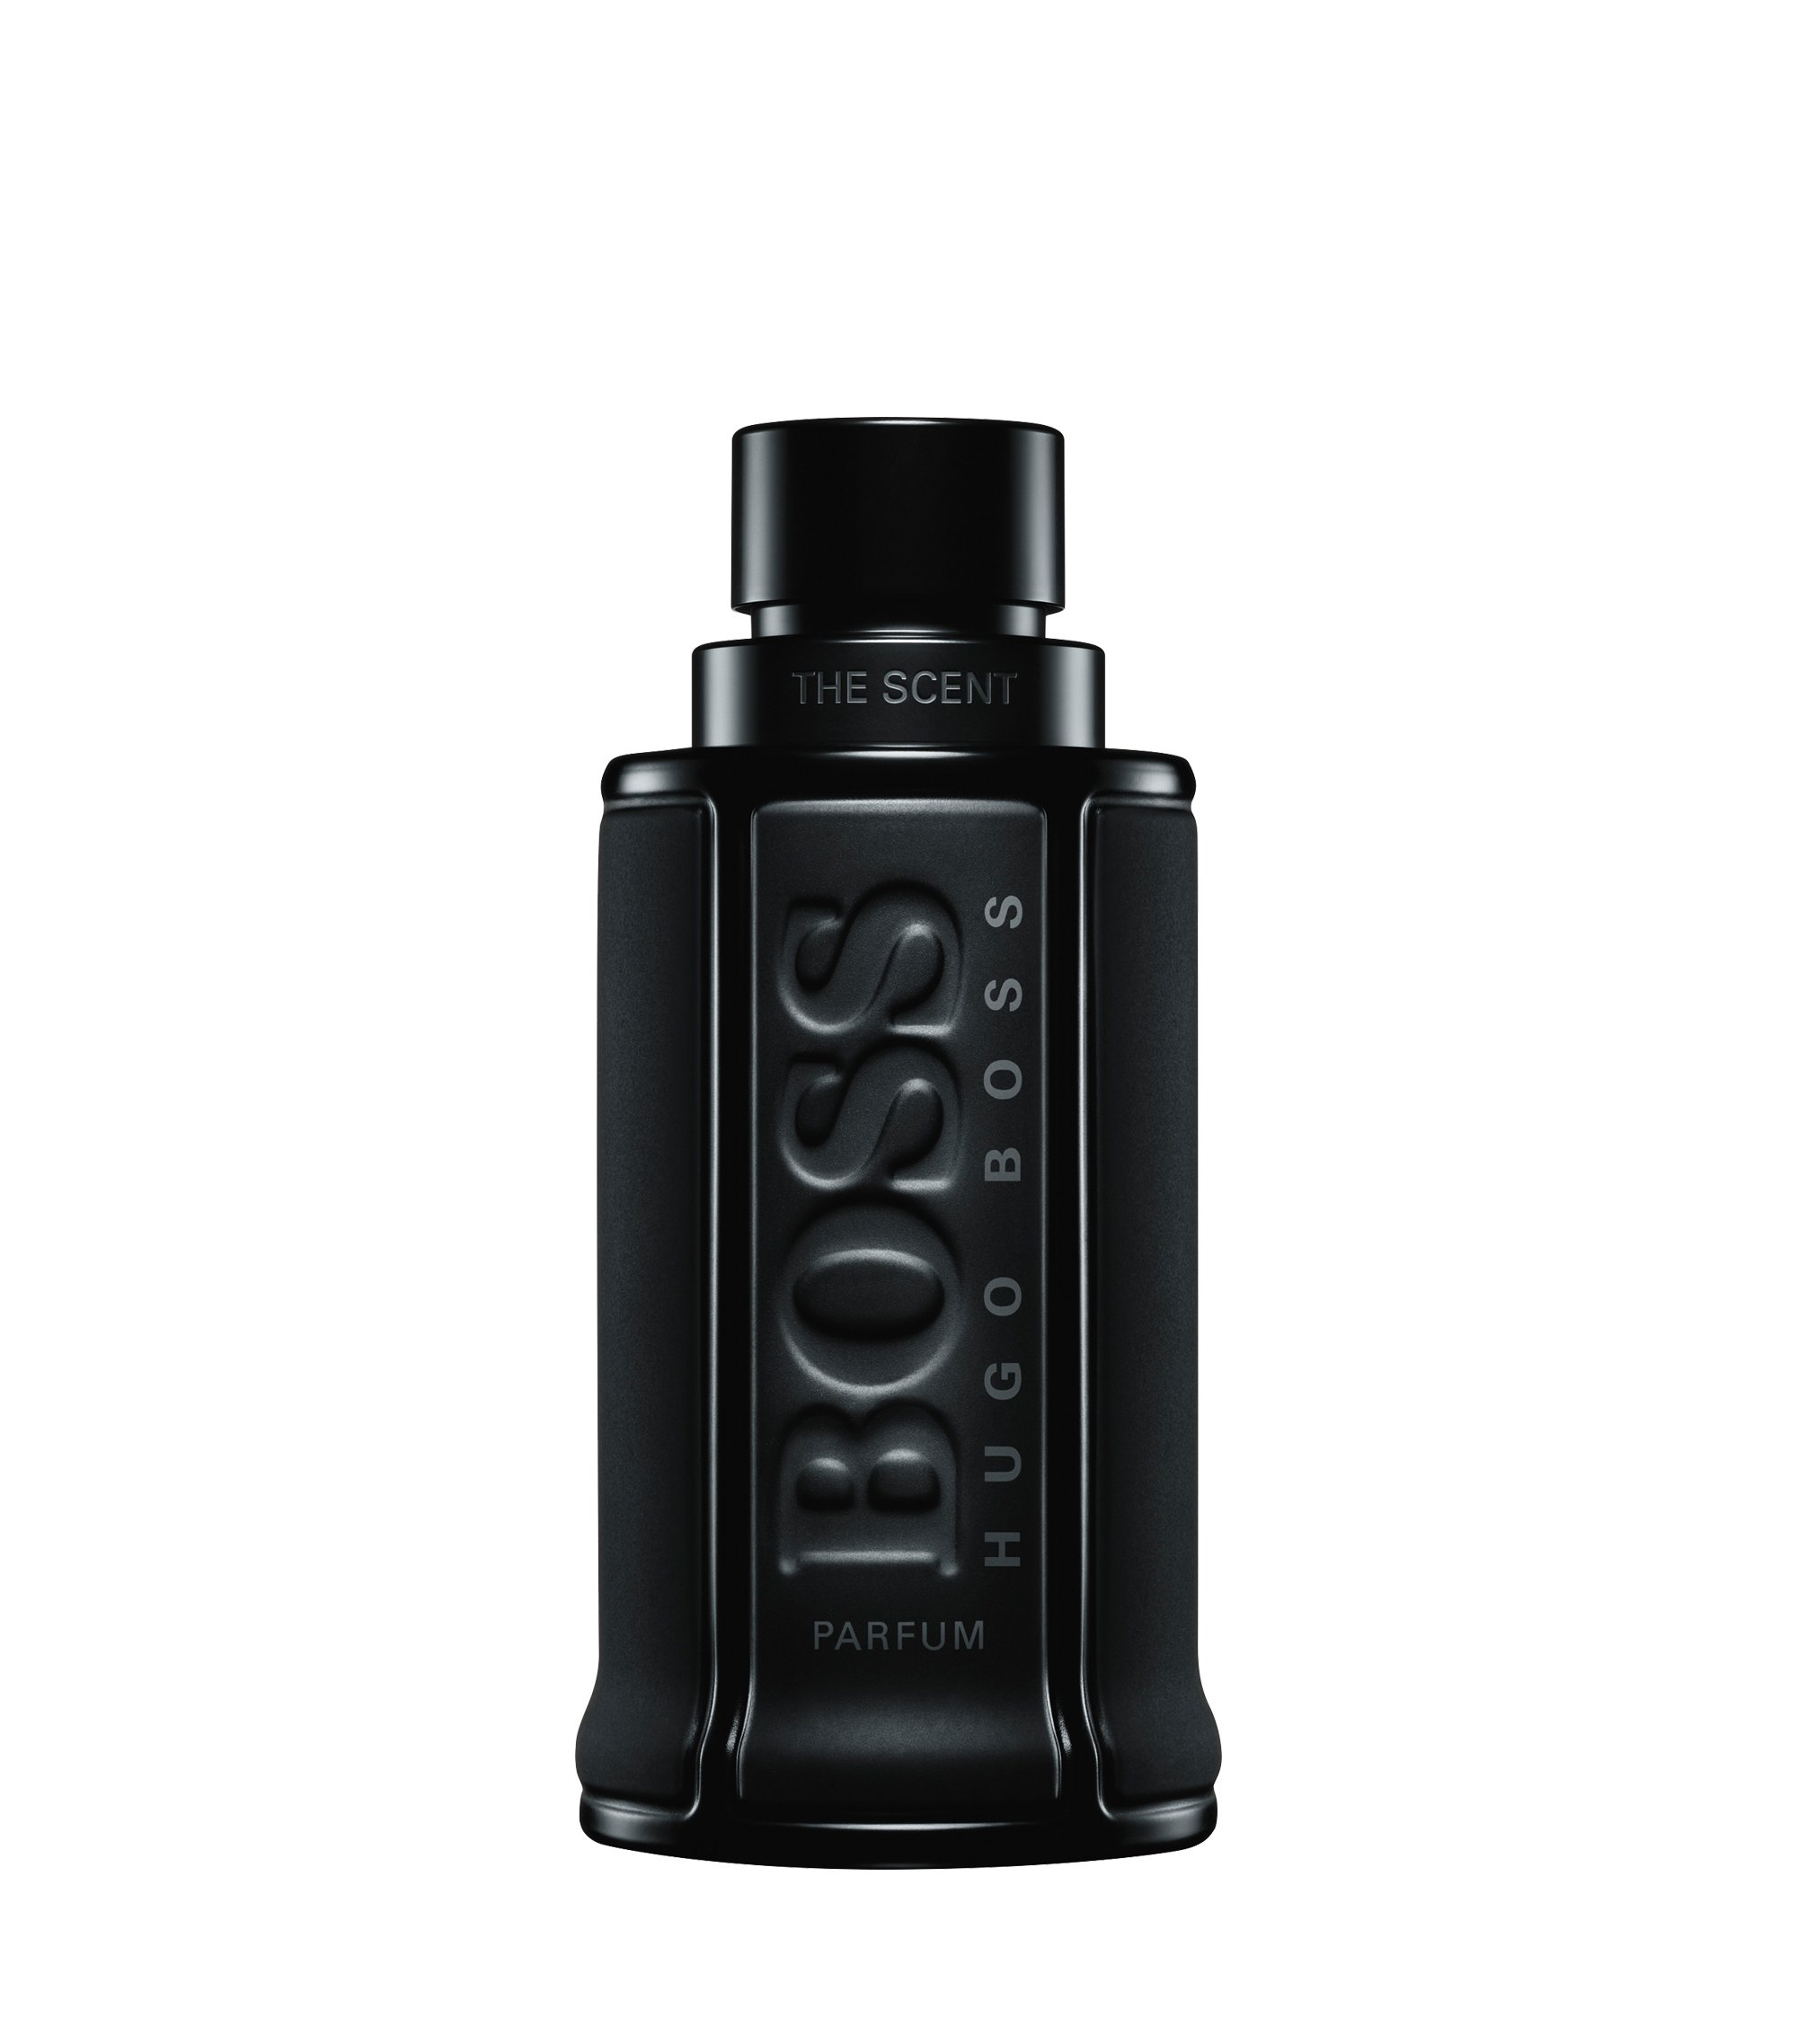 Eau de parfum BOSS The Scent for Him da 100 ml, Assorted-Pre-Pack